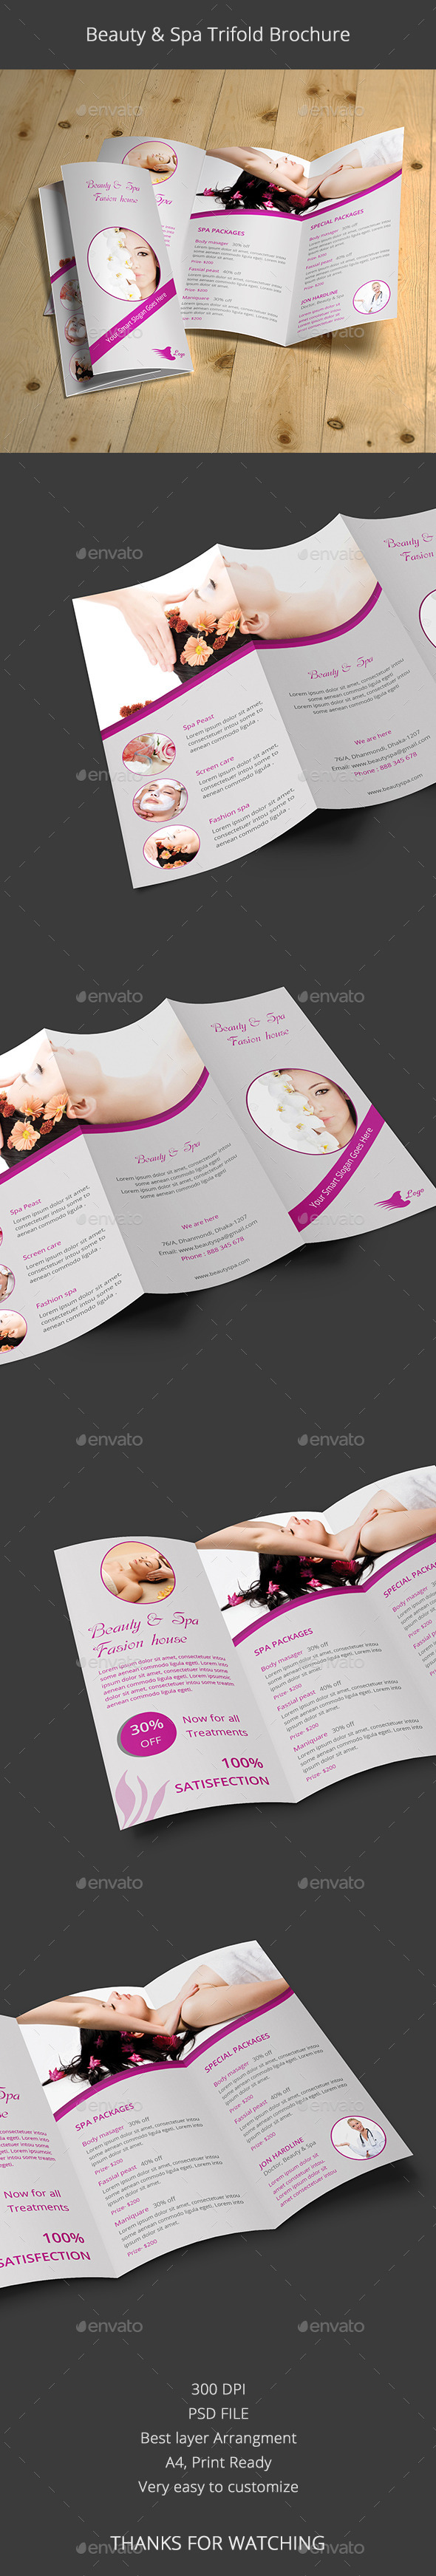 Beauty & Spa Trifold Brochure - Brochures Print Templates